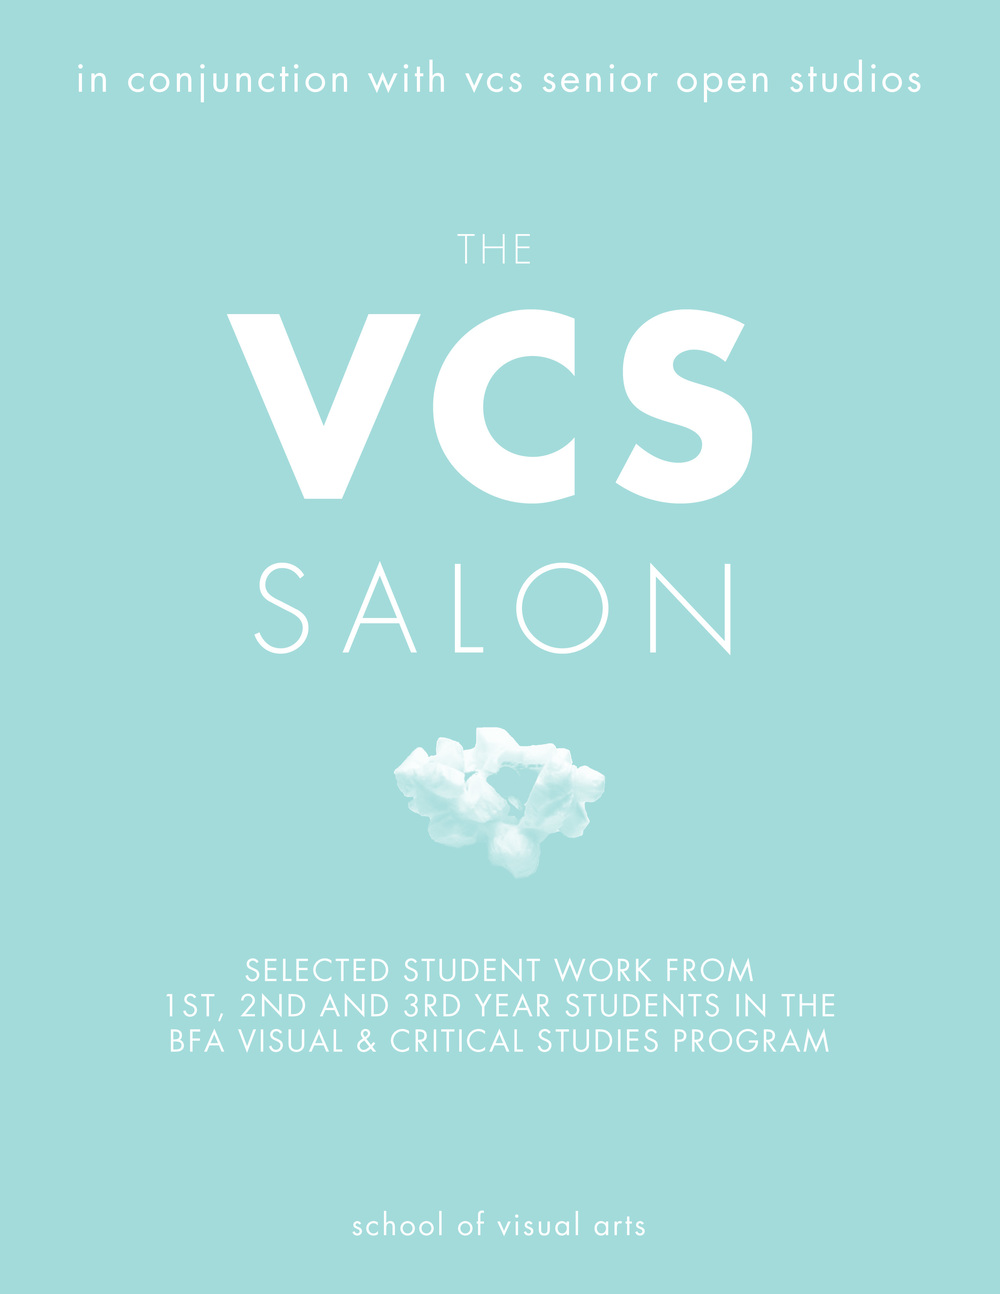 THE VCS SALON (2012)